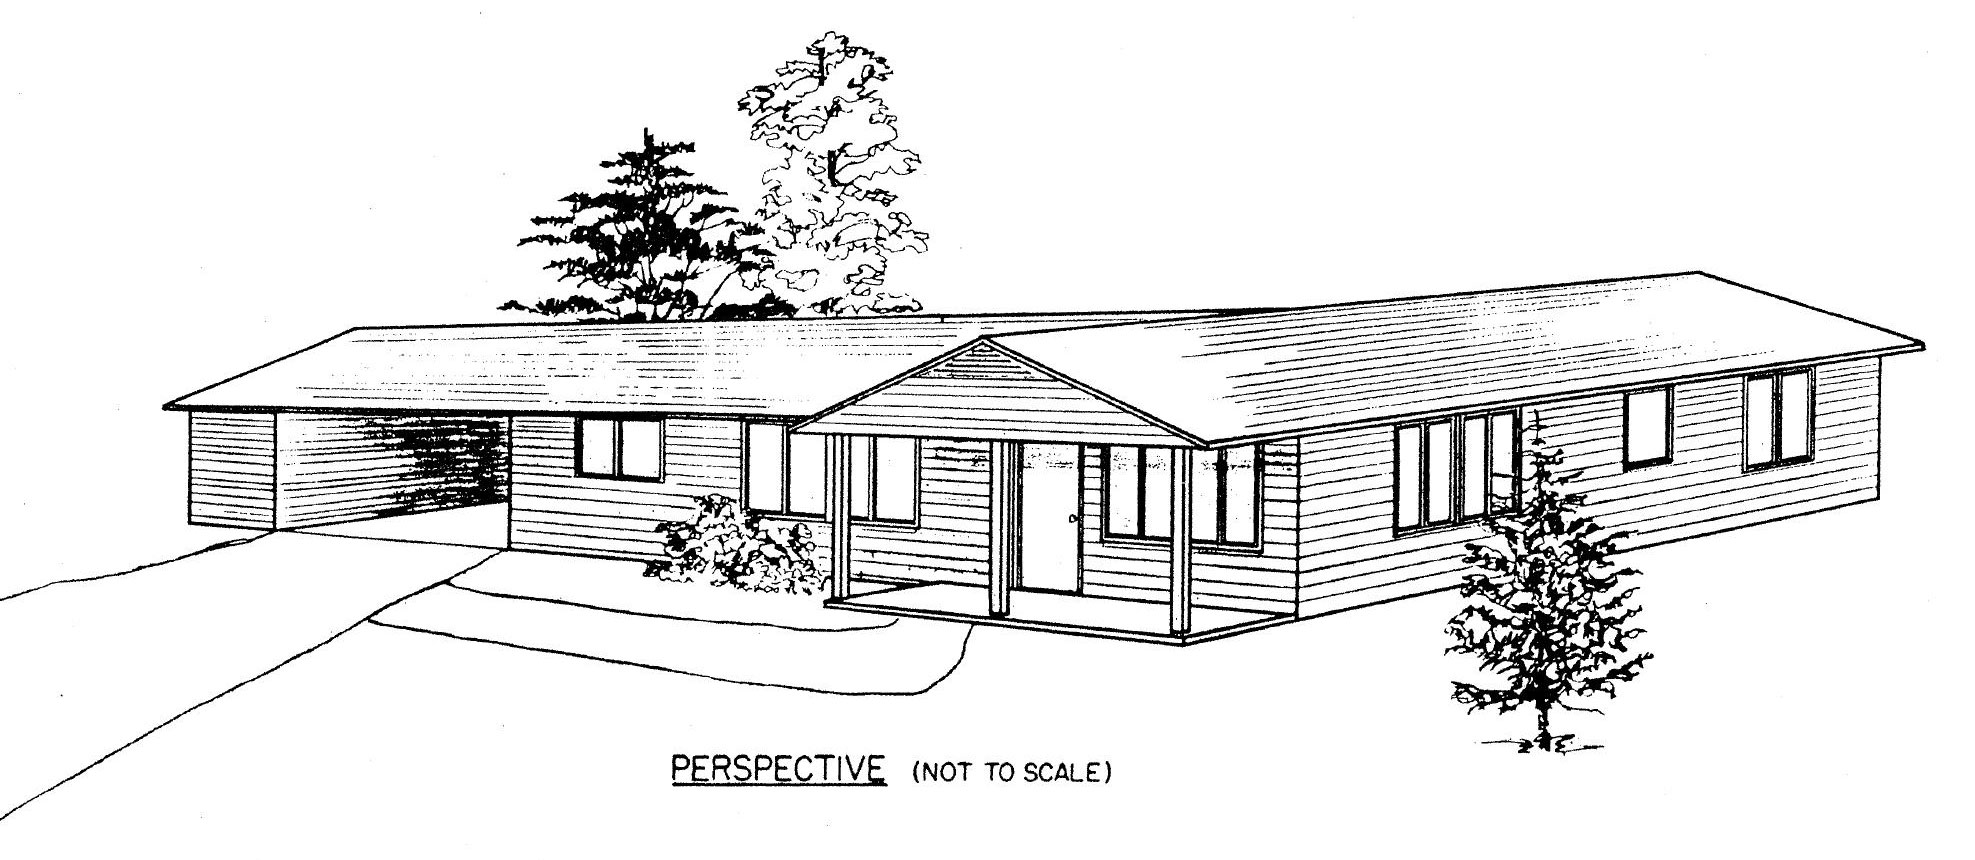 Ranch style house clipart images for Ranch building plans